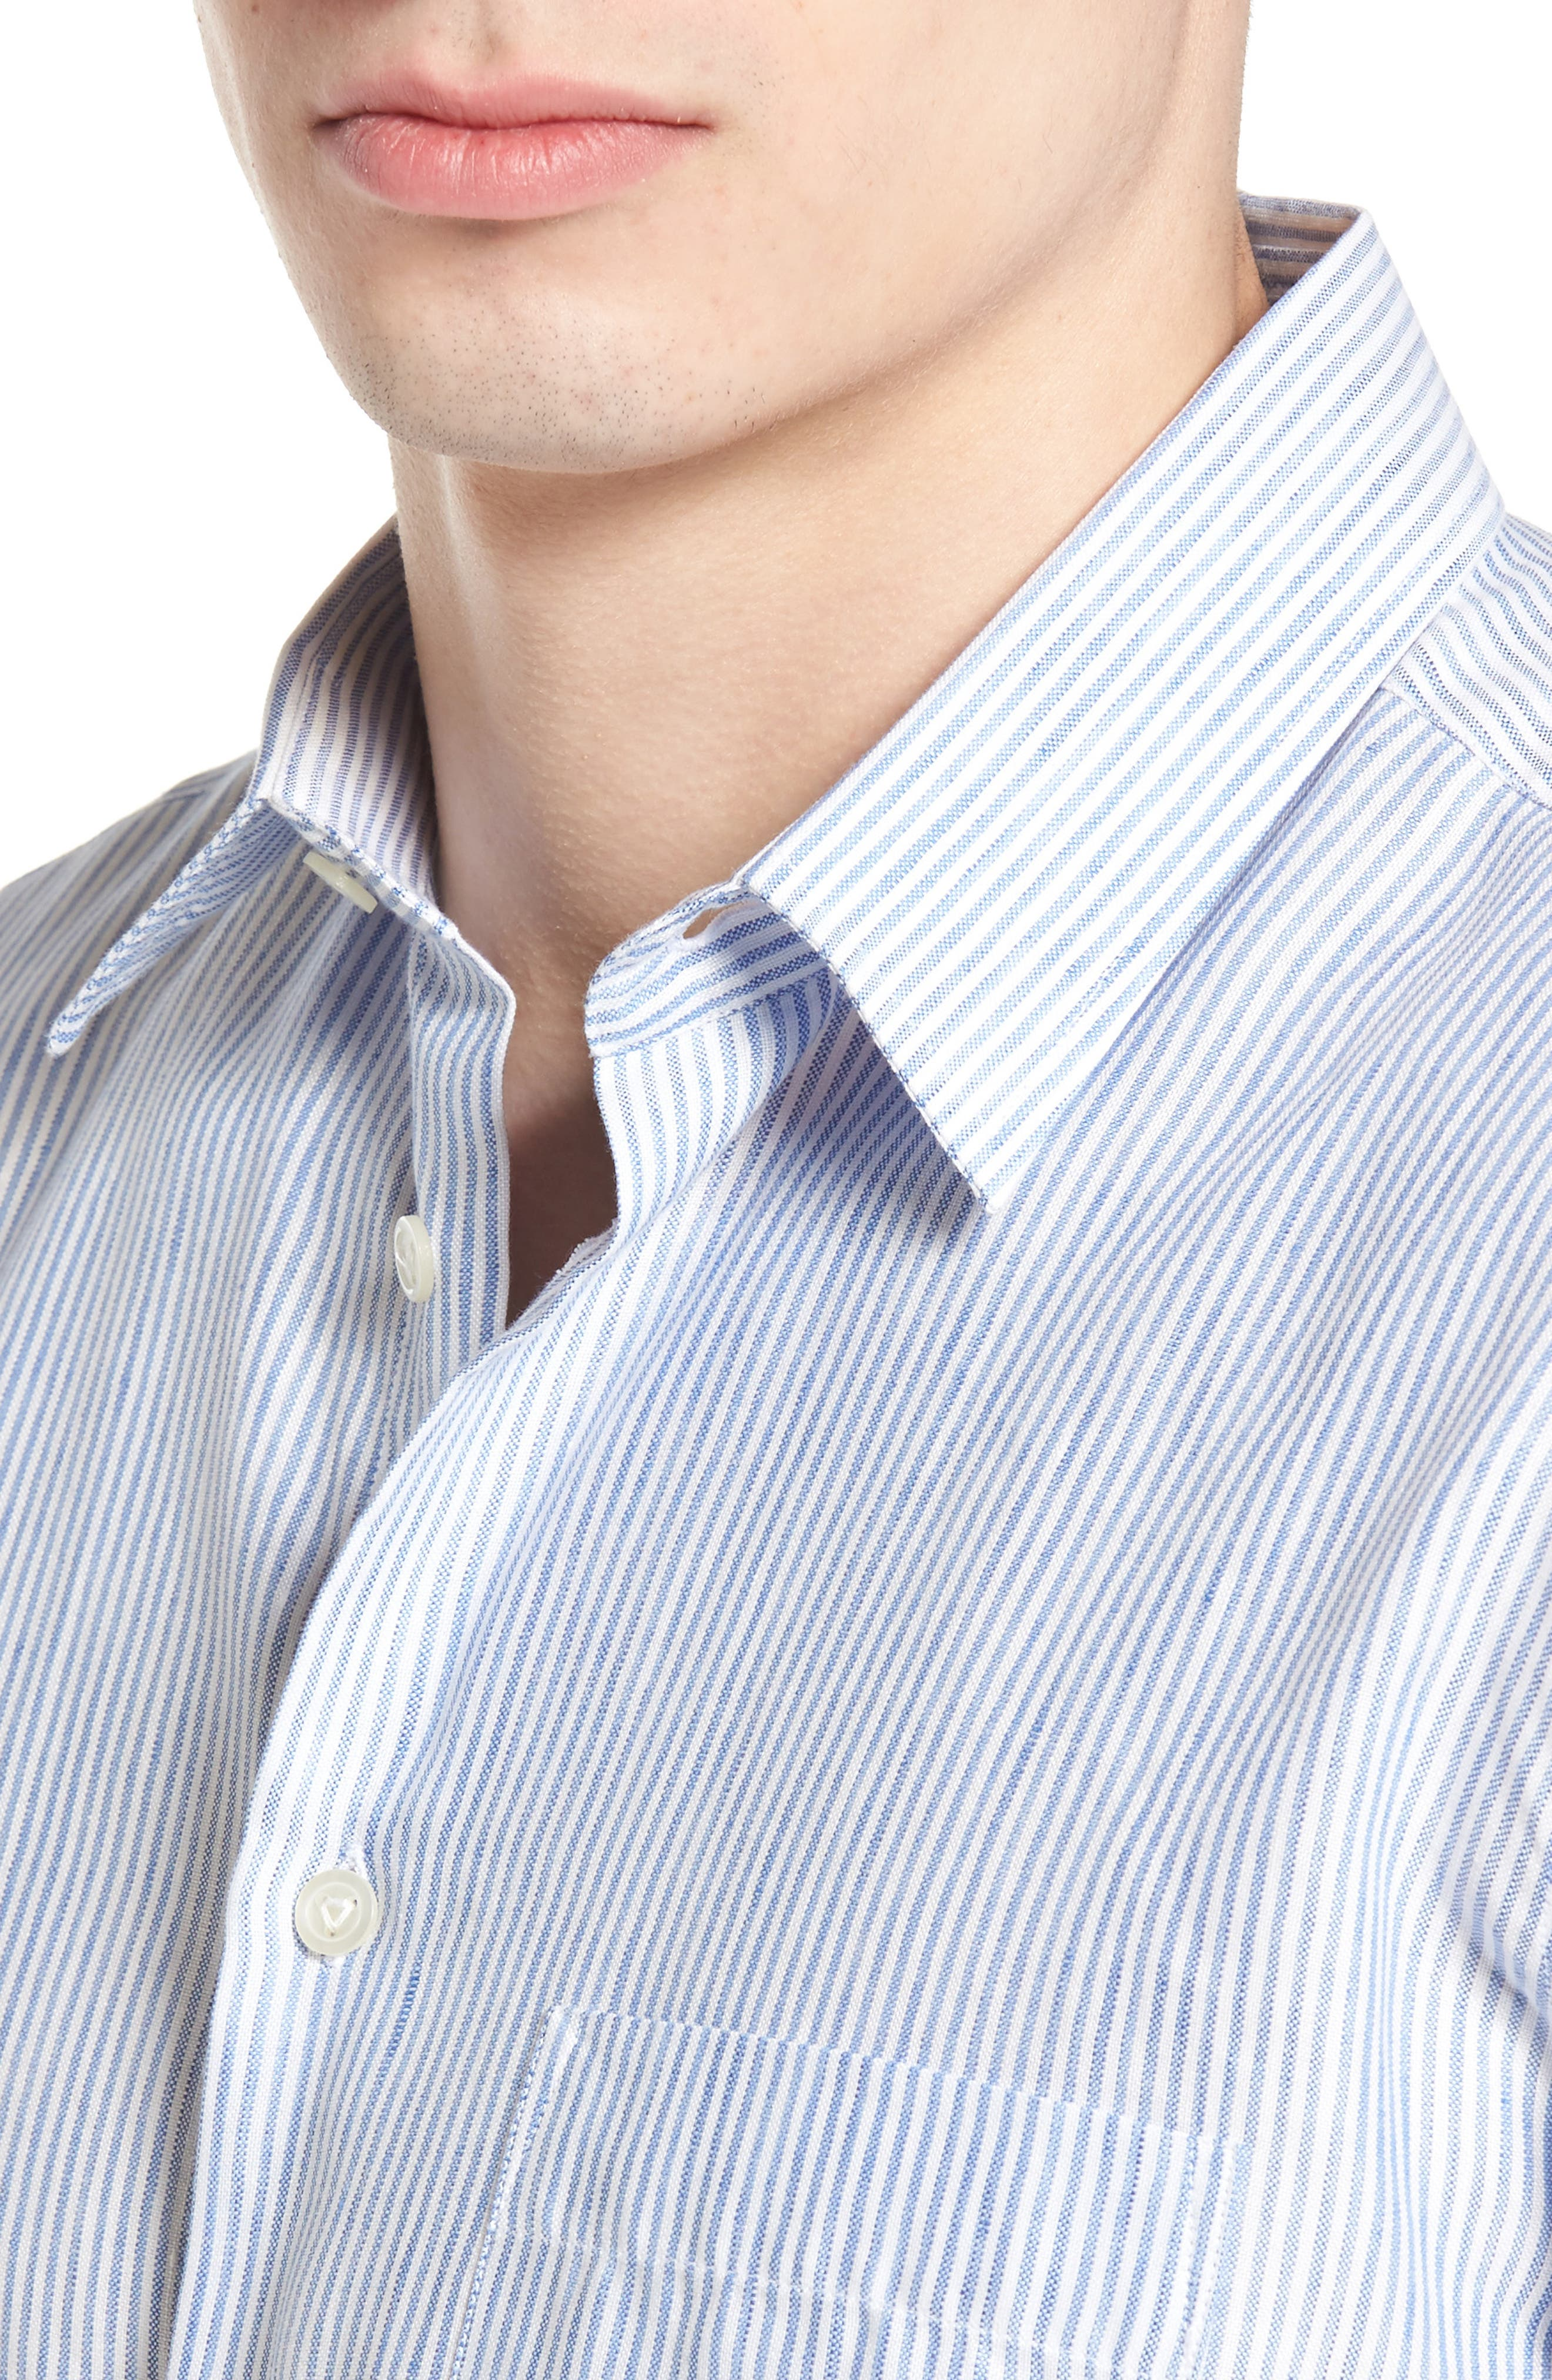 Stripe Linen Blend Sport Shirt,                             Alternate thumbnail 2, color,                             Sky Blue